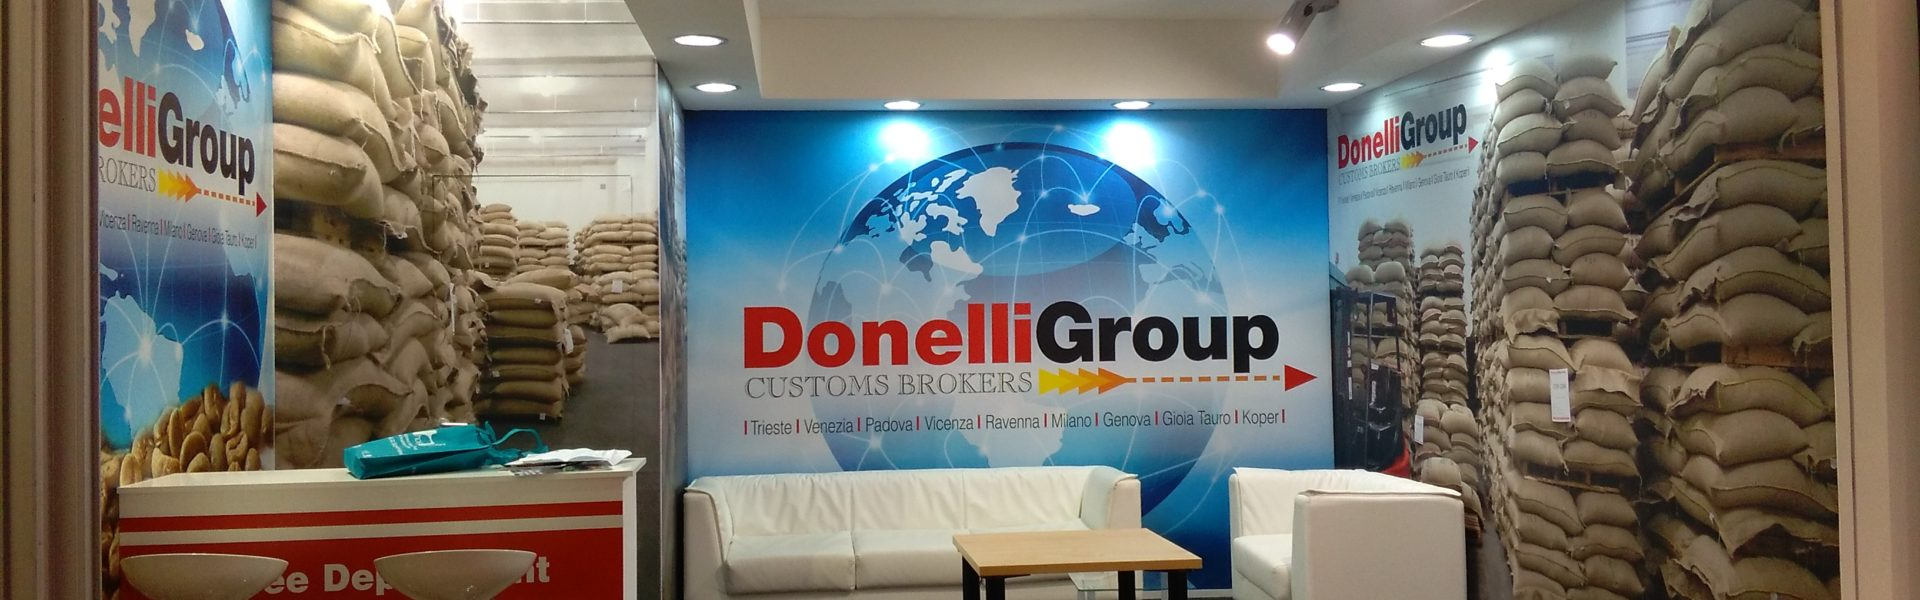 Donelli Group